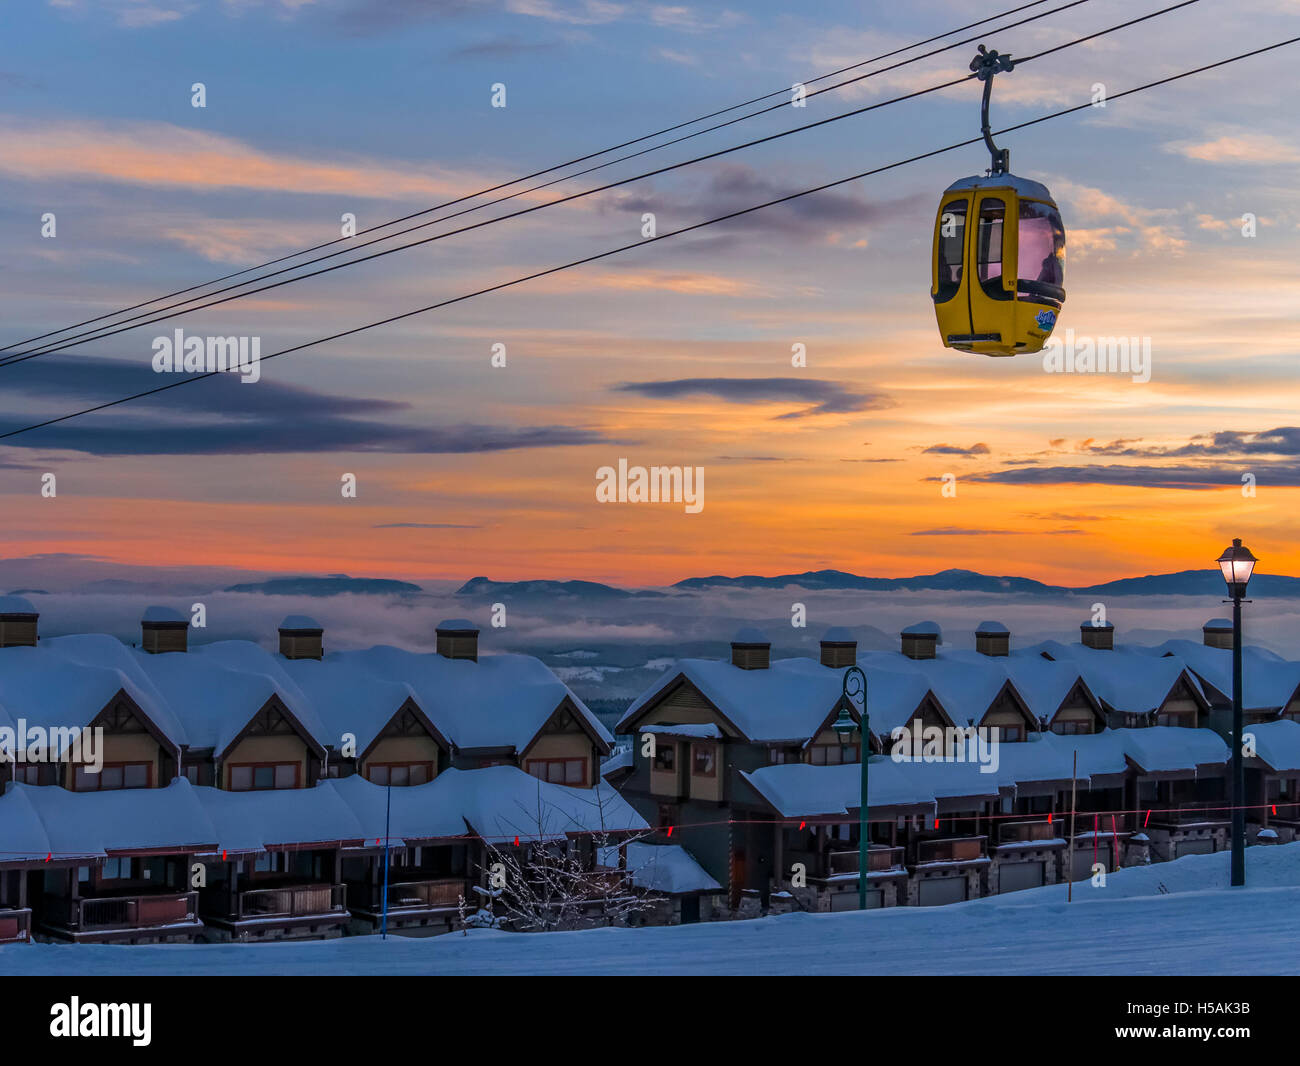 Coucher du soleil et de la télécabine, Big White Ski Resort, Colombie-Britannique, Canada. Photo Stock